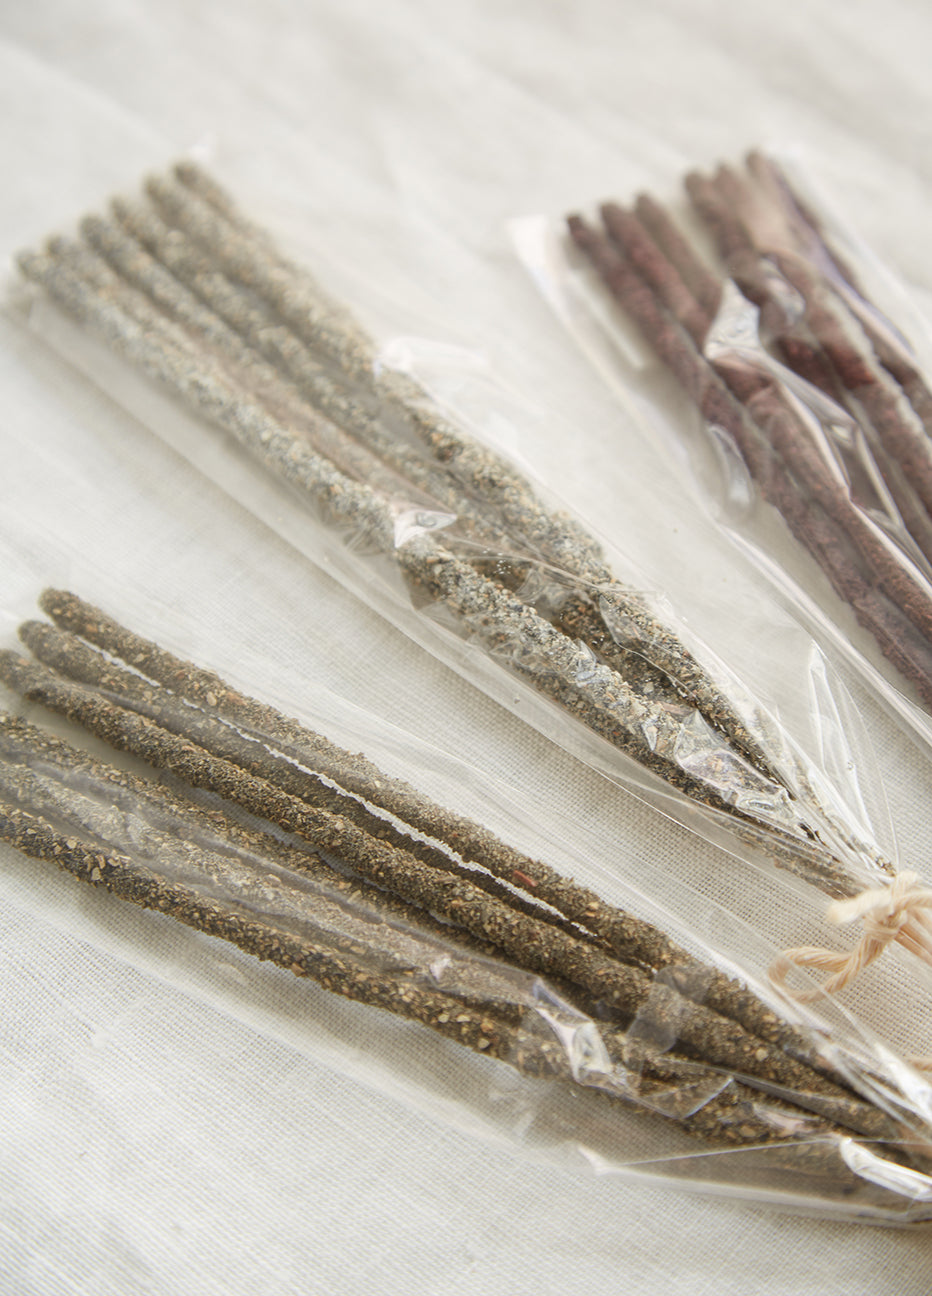 Handmade Ashram Incense Sticks